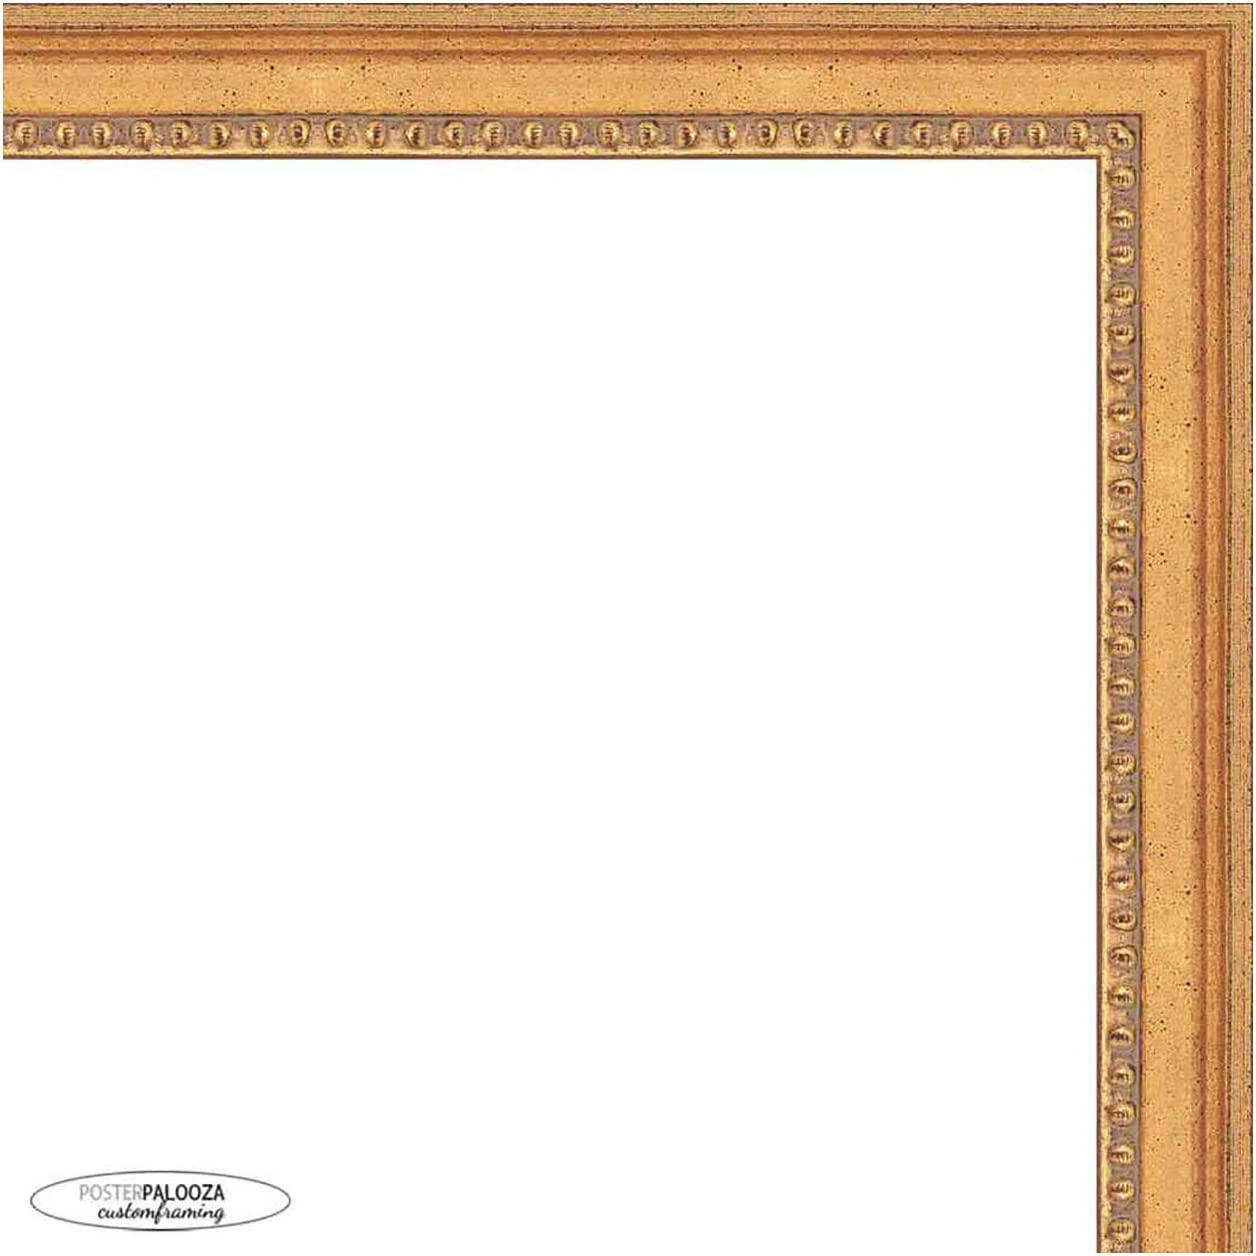 Poster Palooza 16x14 Traditional Discount mail order Gold Complete Max 72% OFF Fram Wood Picture